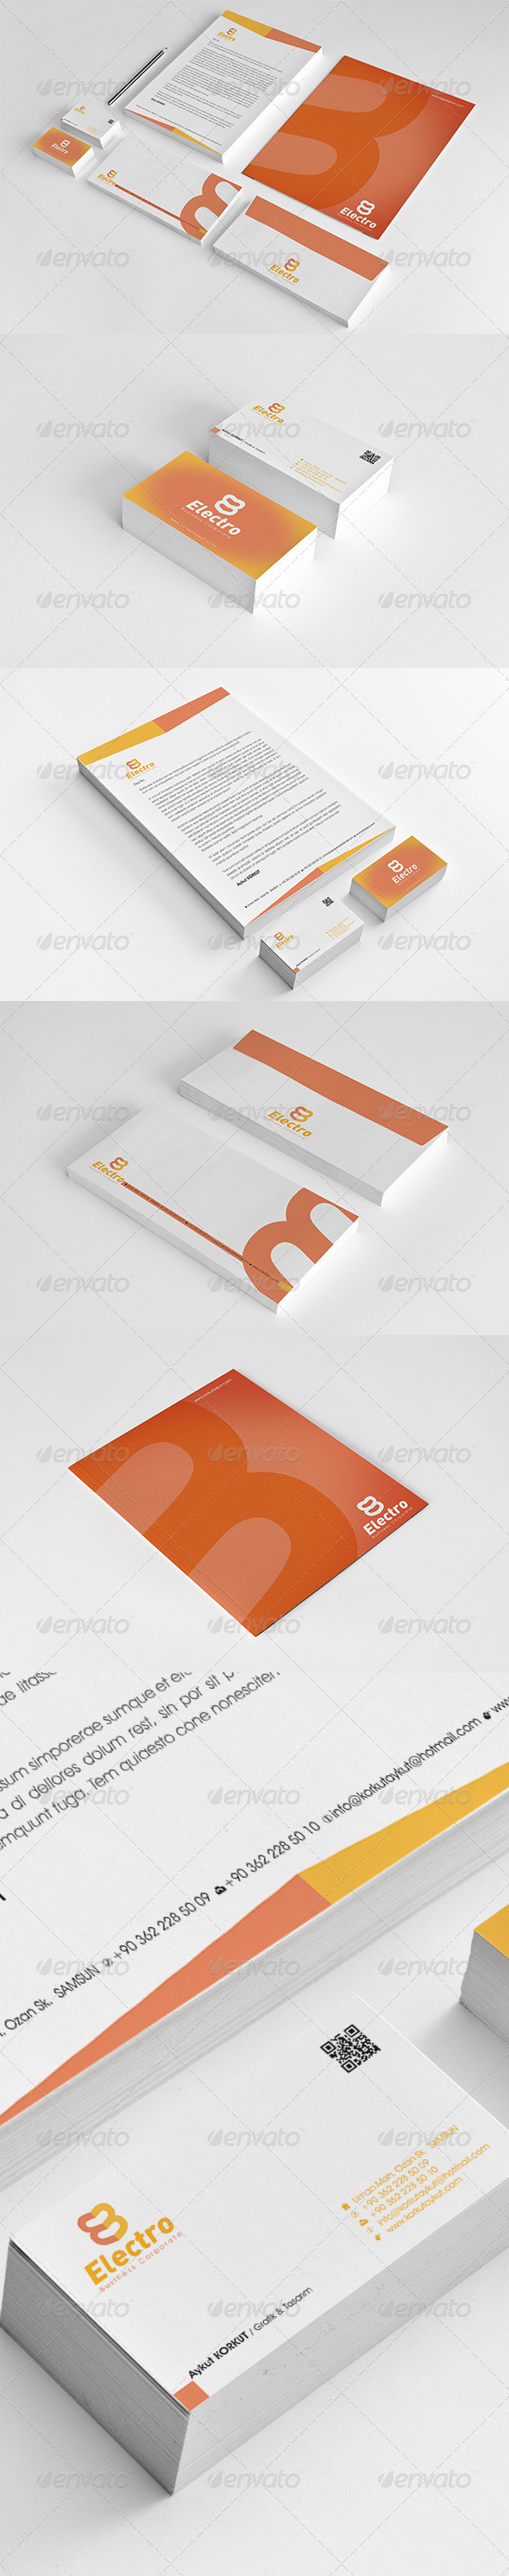 GraphicRiver Electro Corporate Identity Package 6524245